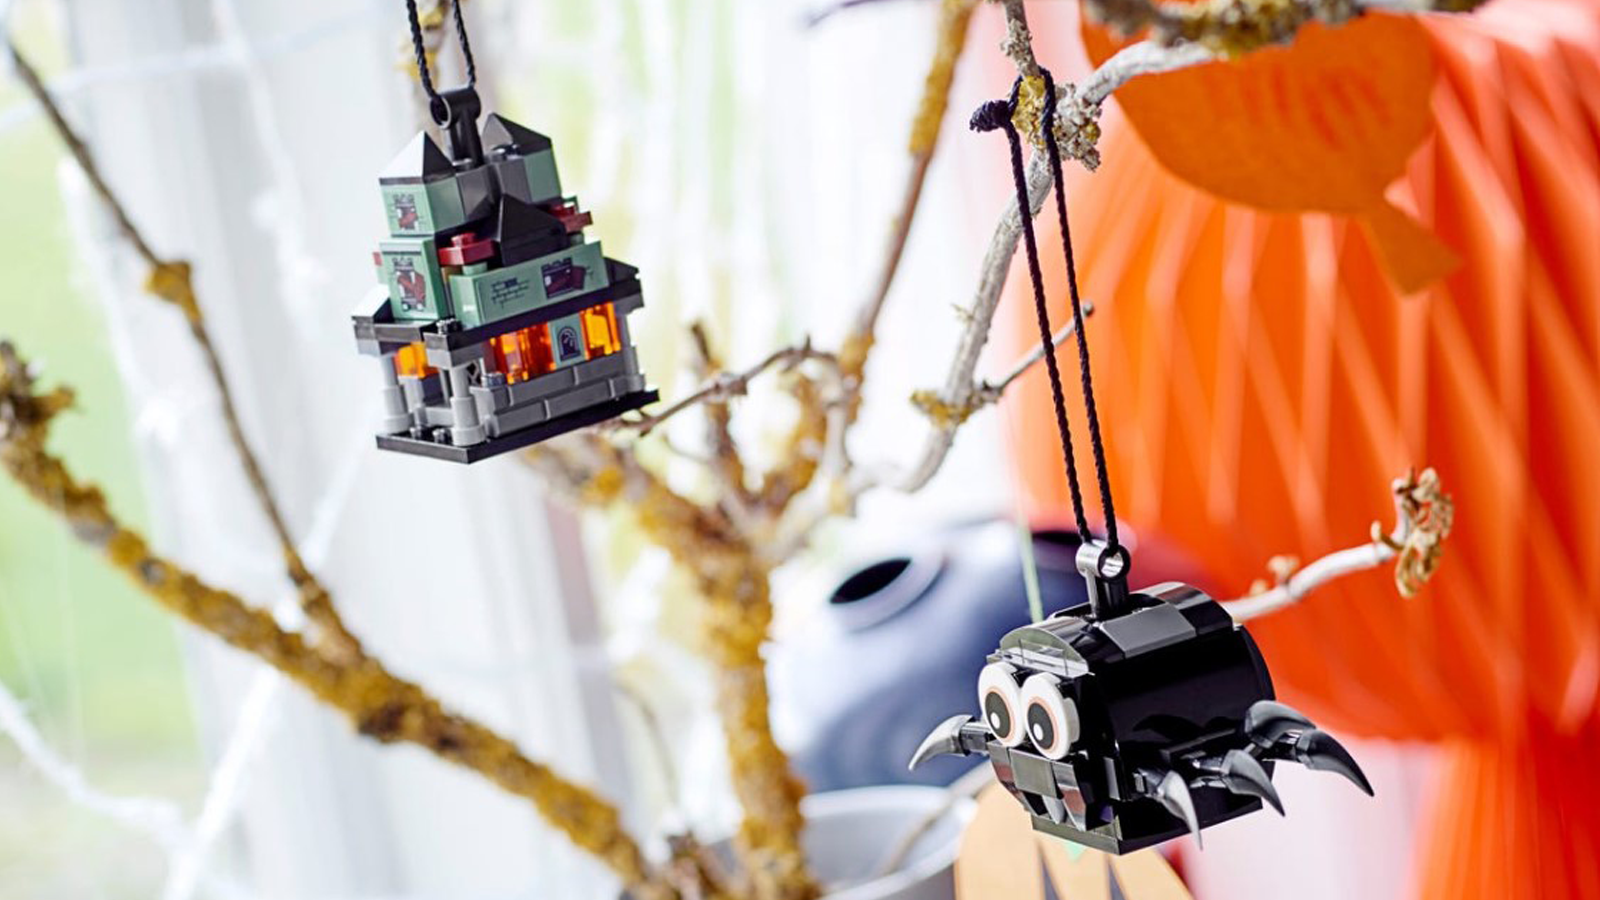 LEGO Spider & Haunted House Pack hanging from tree with other seasonal decor